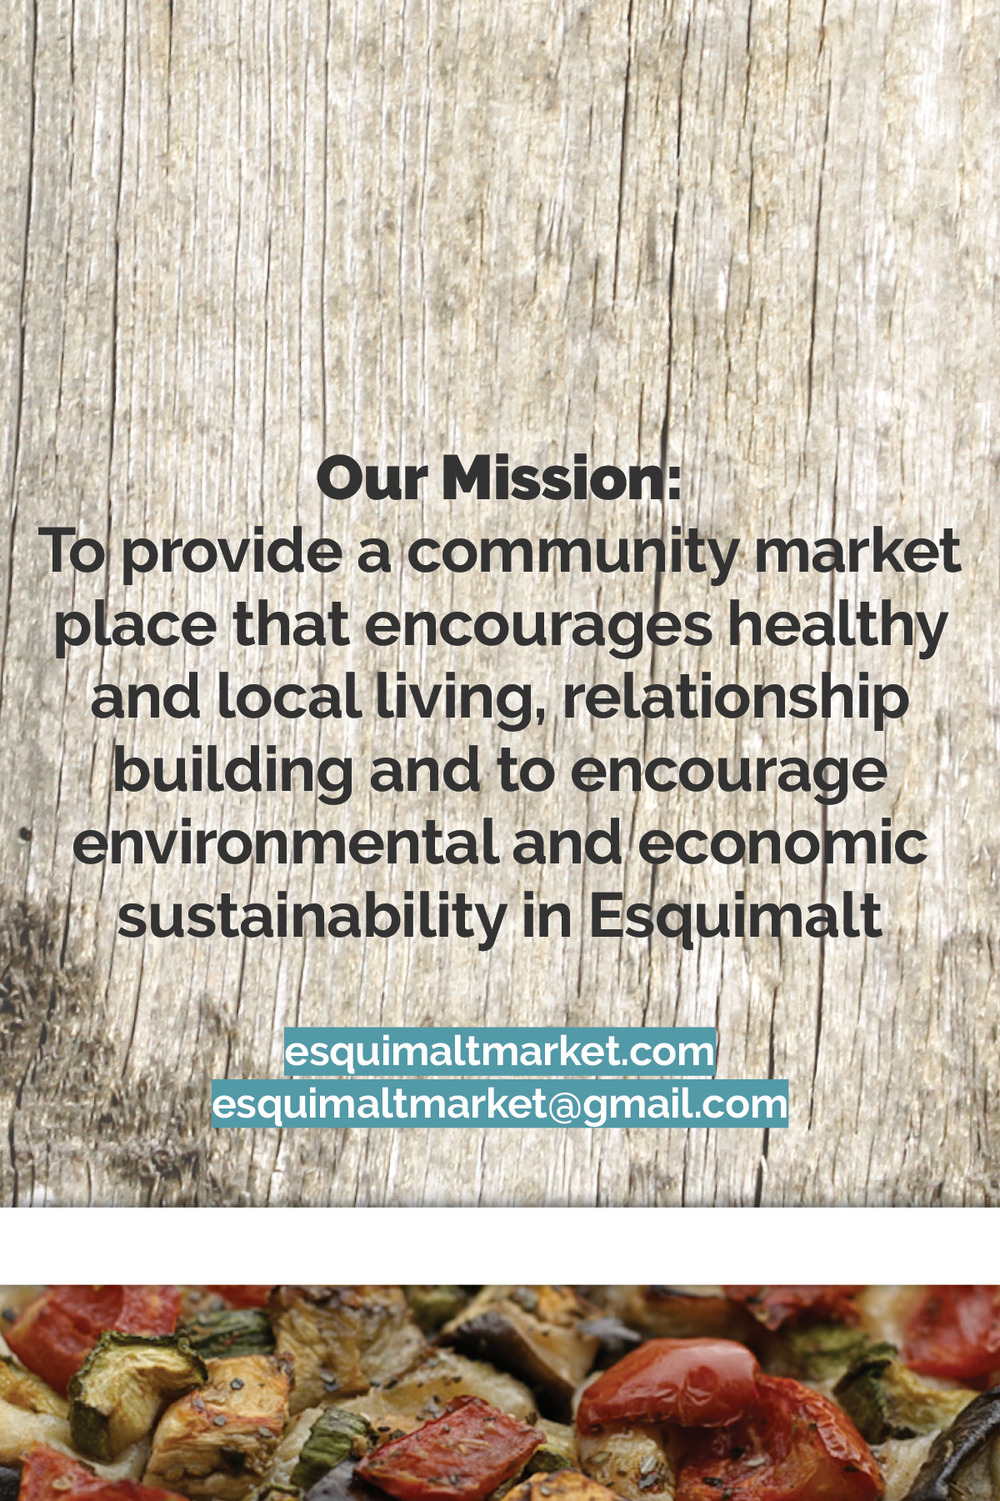 Esquimalt_flyer_larger2.jpg